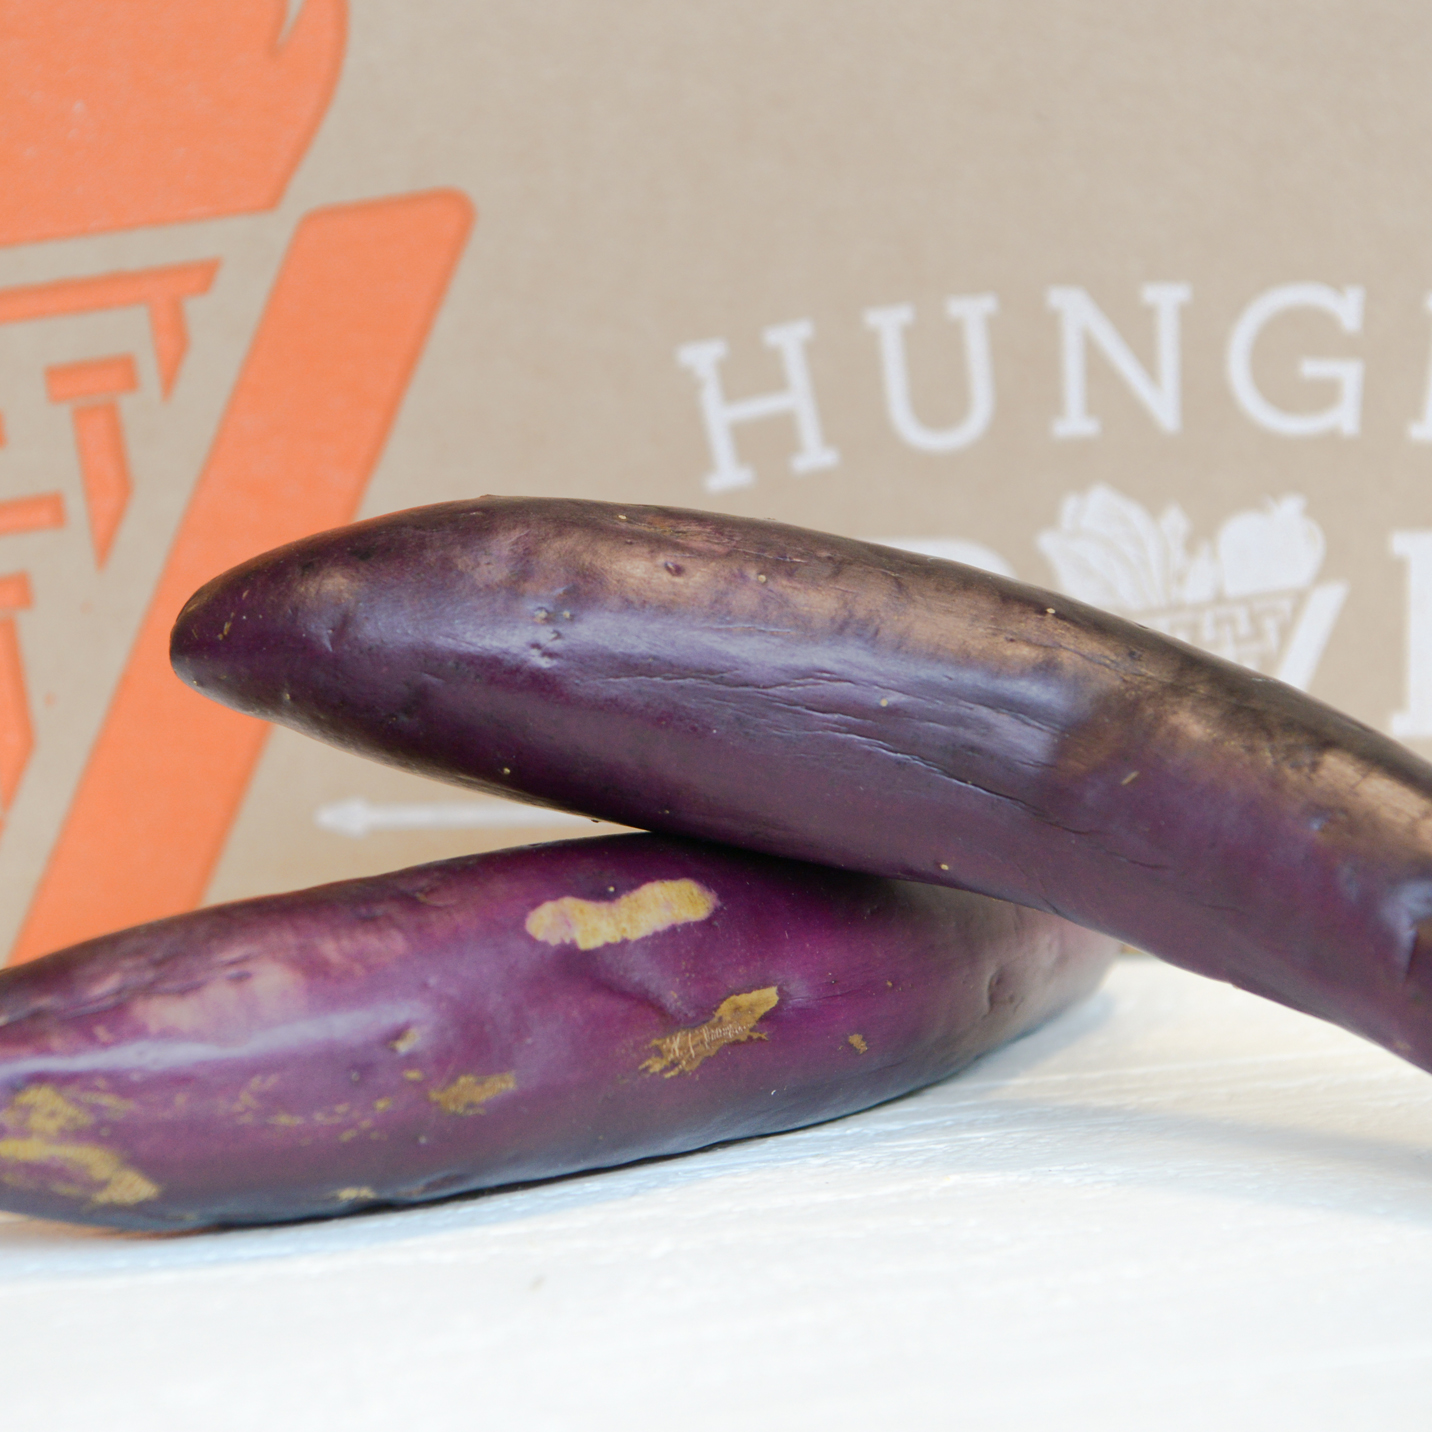 Chinese Eggplant with Garlic SauceA healthier take on an American Chinese Restaurant favorite. - Find the recipe at: The Woks of Life